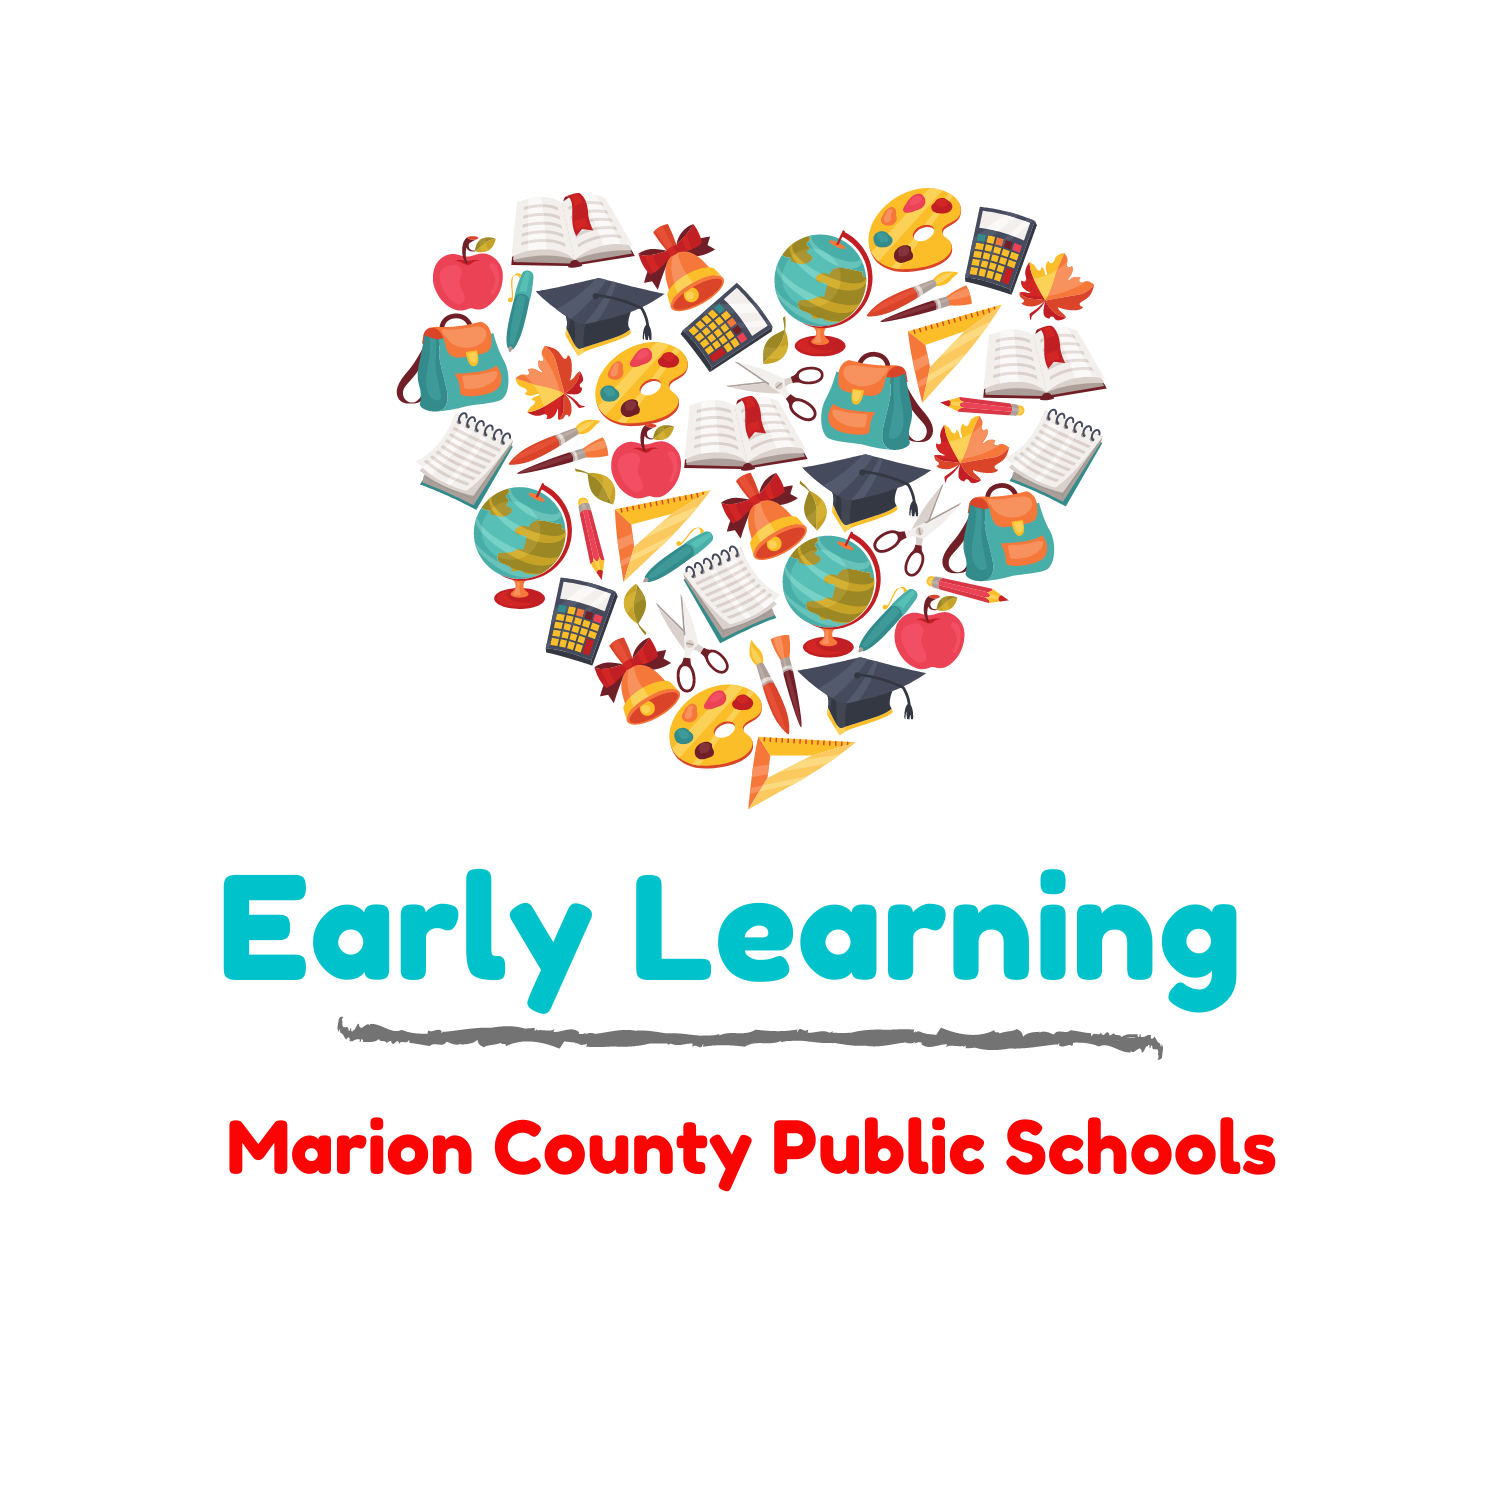 Early Learning Marion County Public Schools